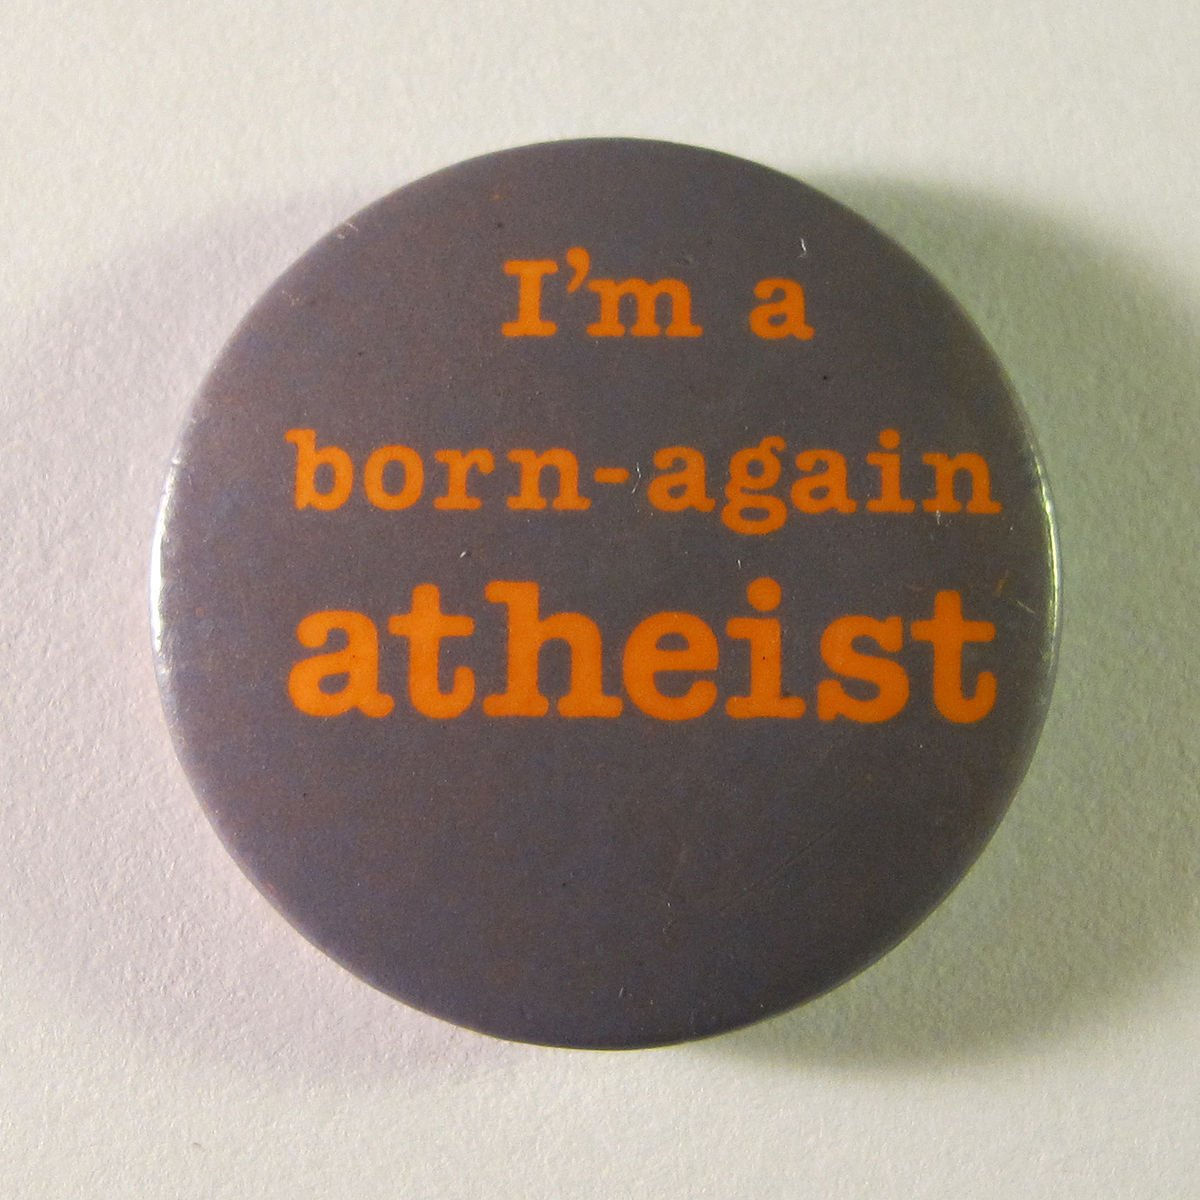 """I'm a born-again atheist"" button. Photo via Wikimedia Commons."